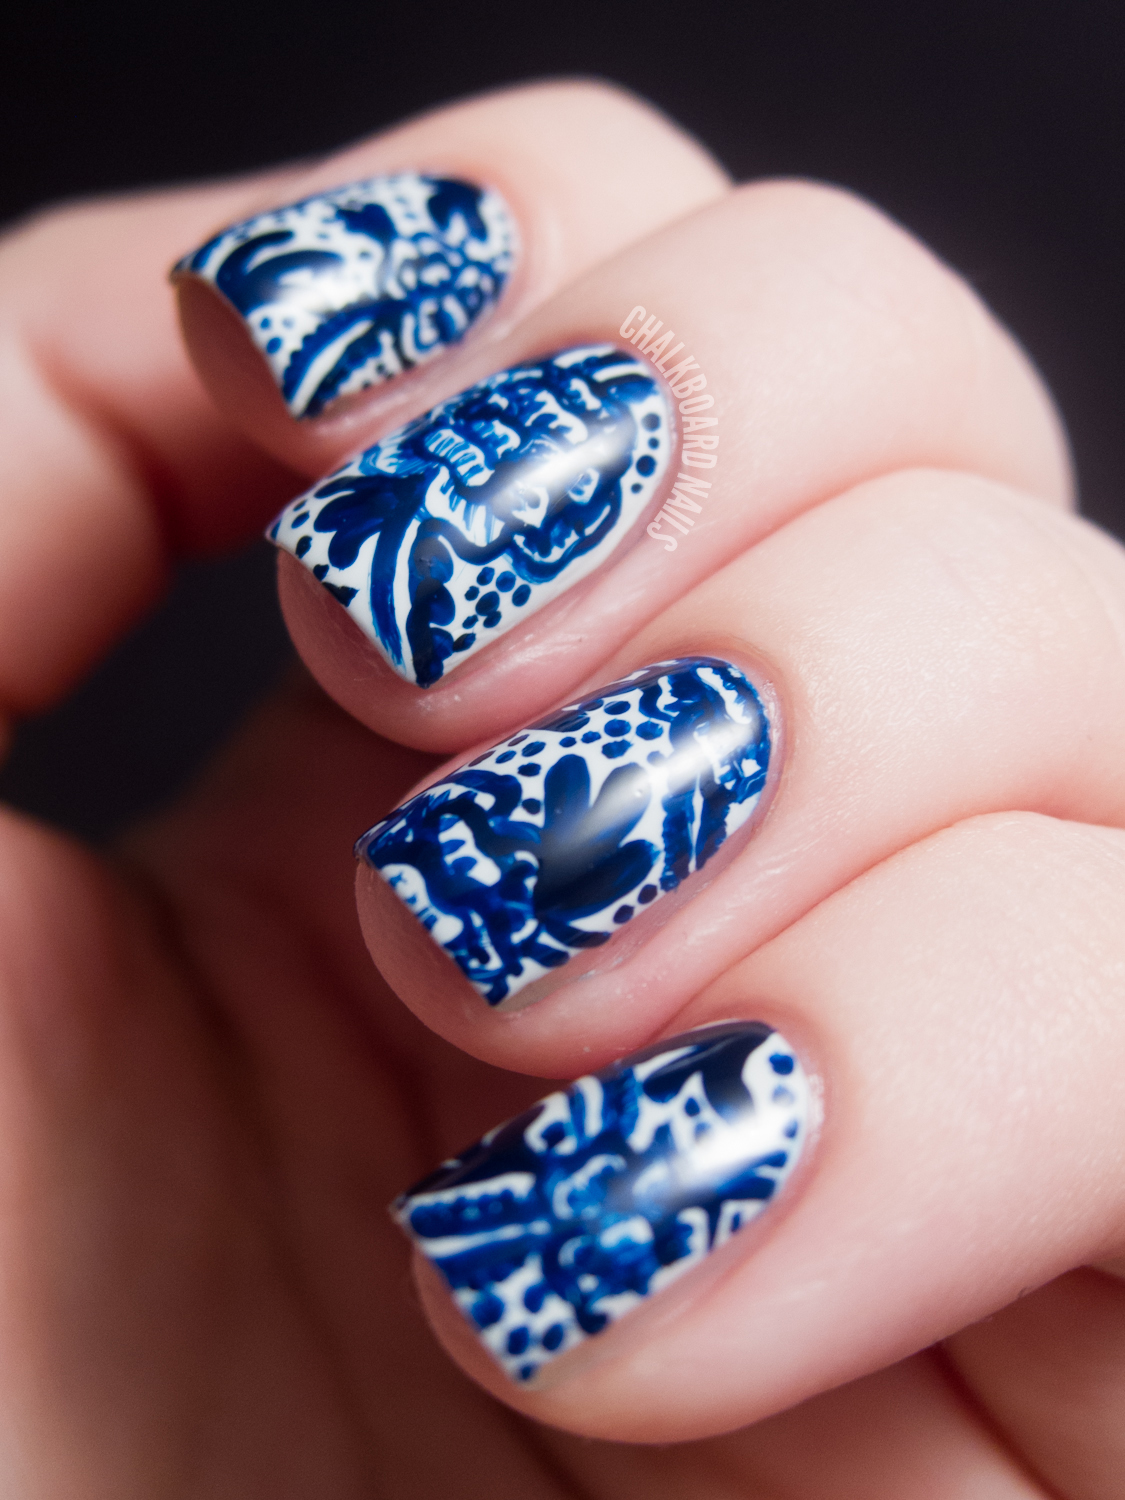 31DC2012: Day 05, Blue Nails